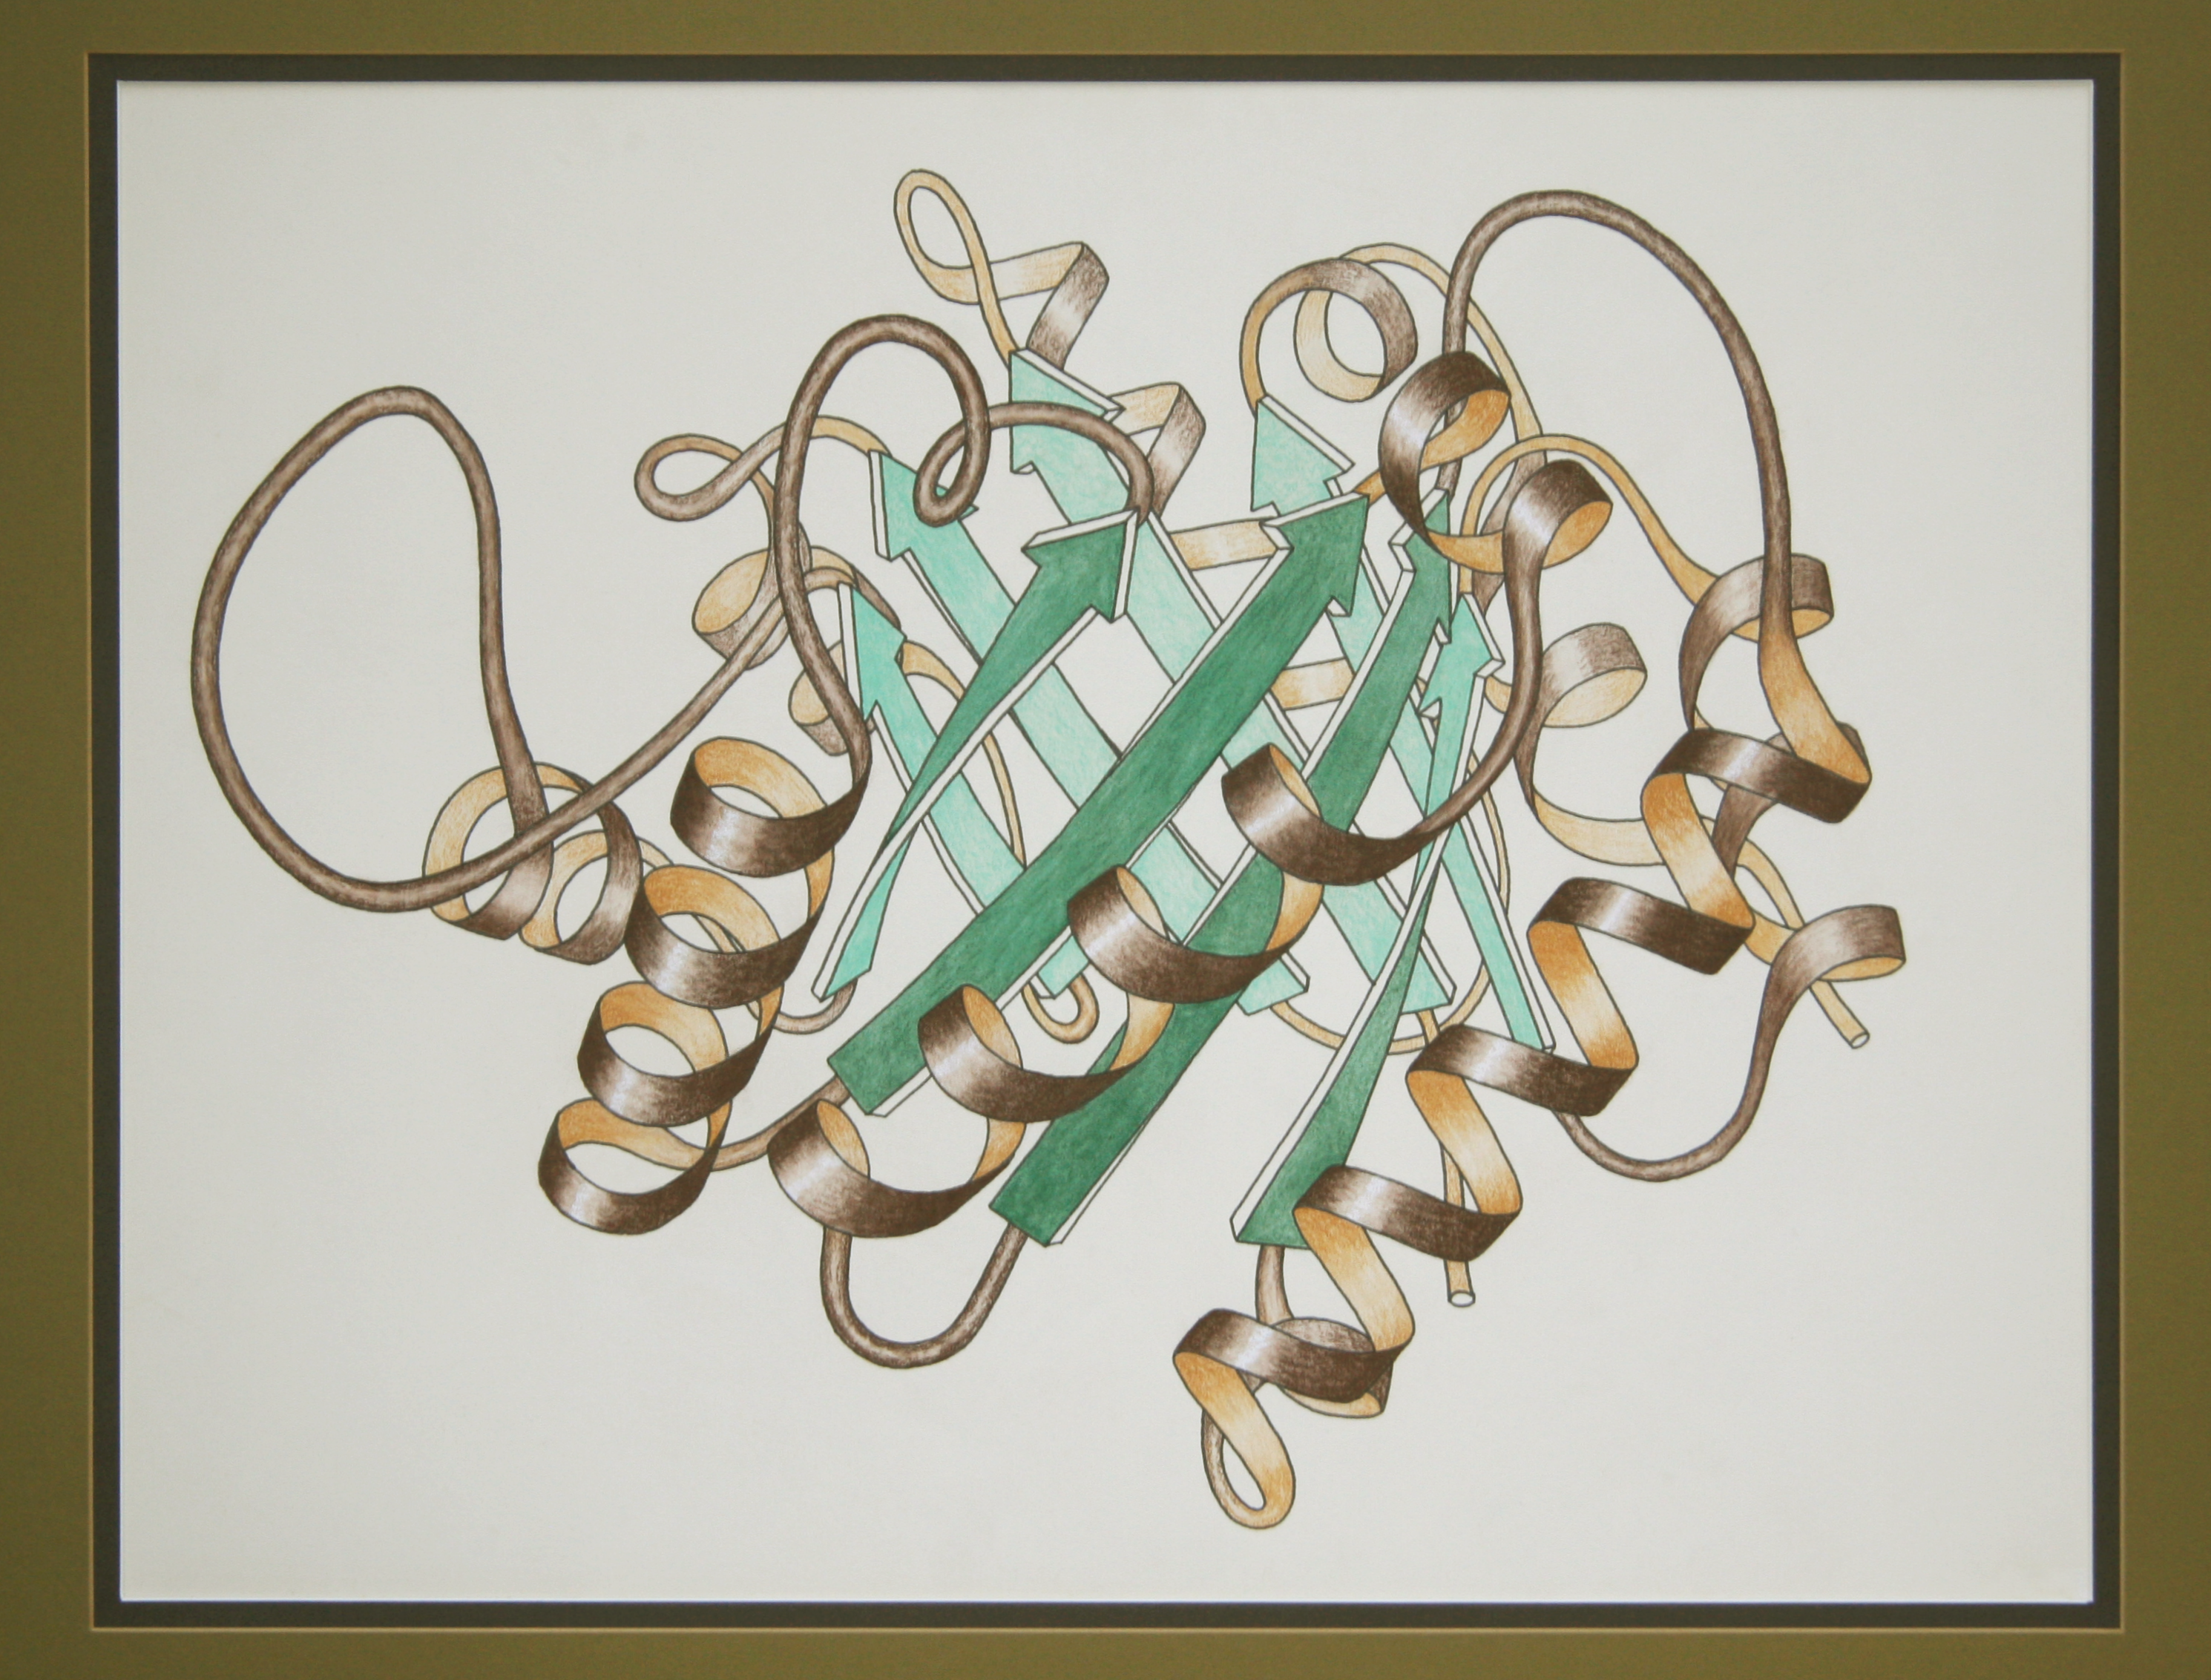 Drawn ribbon bow tie Ribbon Richardson 1981) isomerase schematic